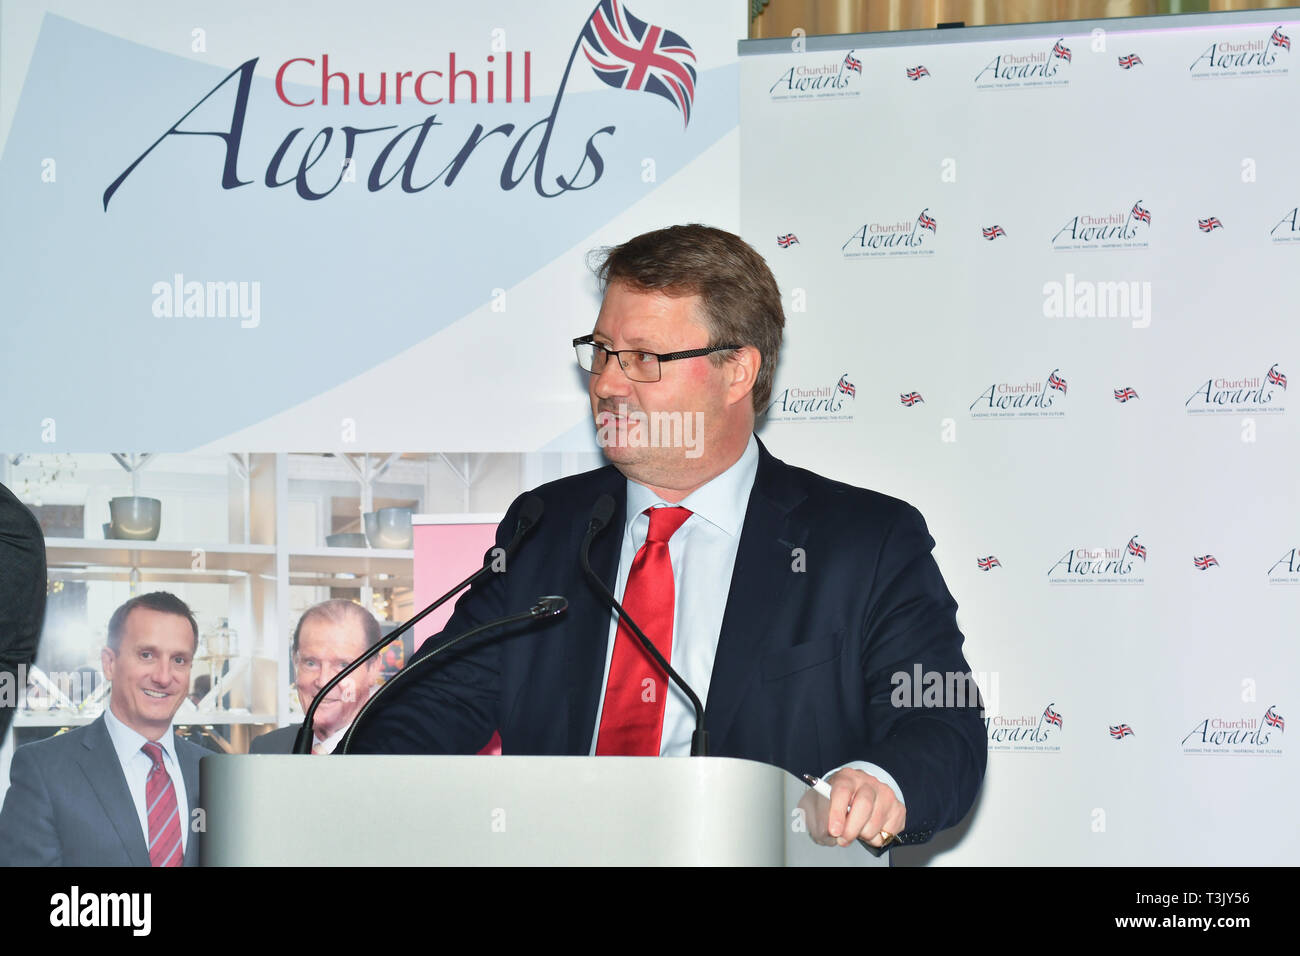 London, UK. 10th Apr, 2019. Rupert Bates presenter of the 7th annual Churchill Awards honour achievements of the Over 65's at Claridge's Hotel on 10 March 2019, London, UK. Credit: Picture Capital/Alamy Live News Stock Photo